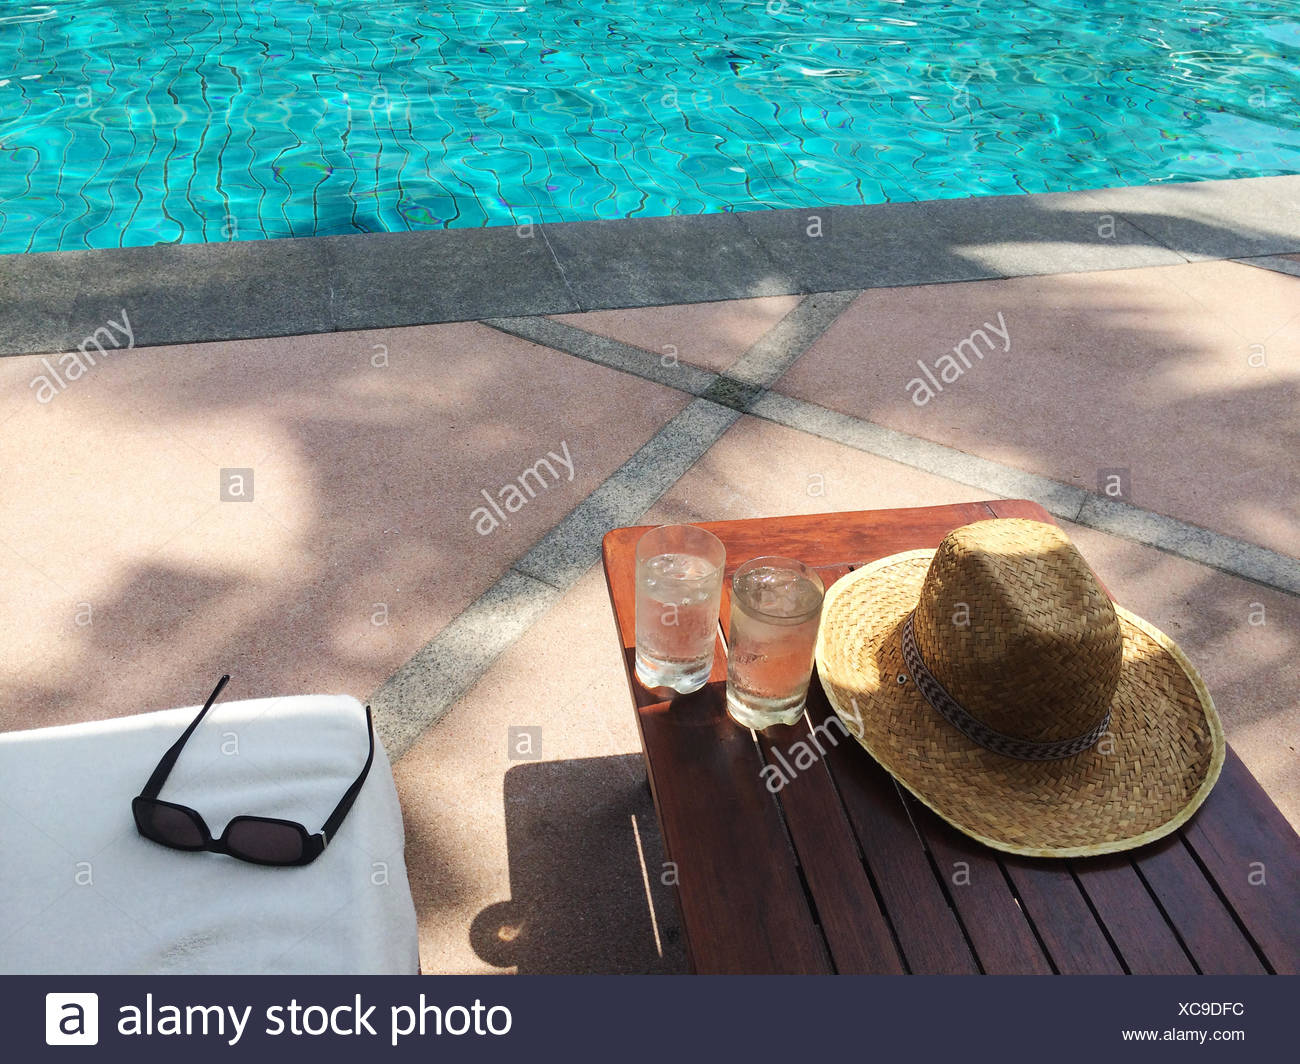 Straw sun hat, sunglasses and two glasses of water by swimming pool - Stock Image